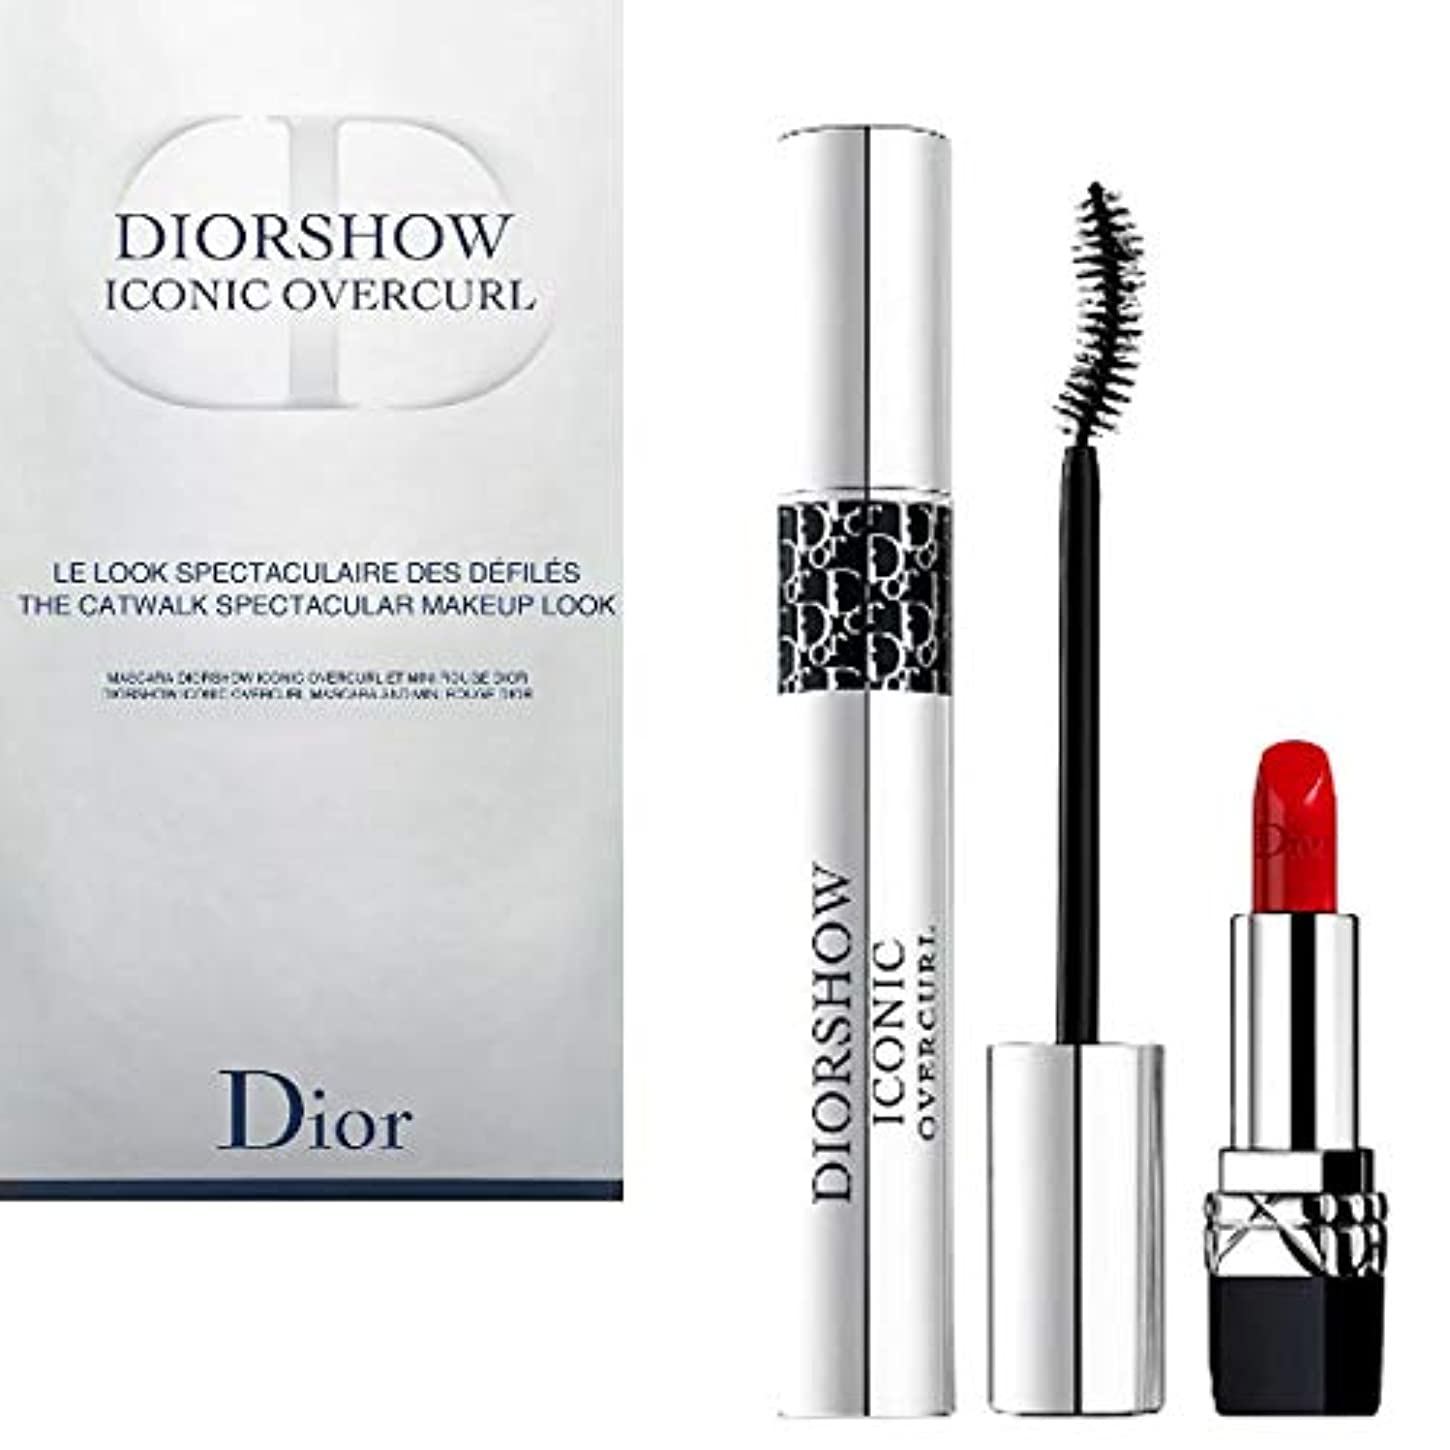 事実外科医くまDior, Diorshow Iconic Overcurl Catwalk Spectacular Makeup Look Set [海外直送品] [並行輸入品]